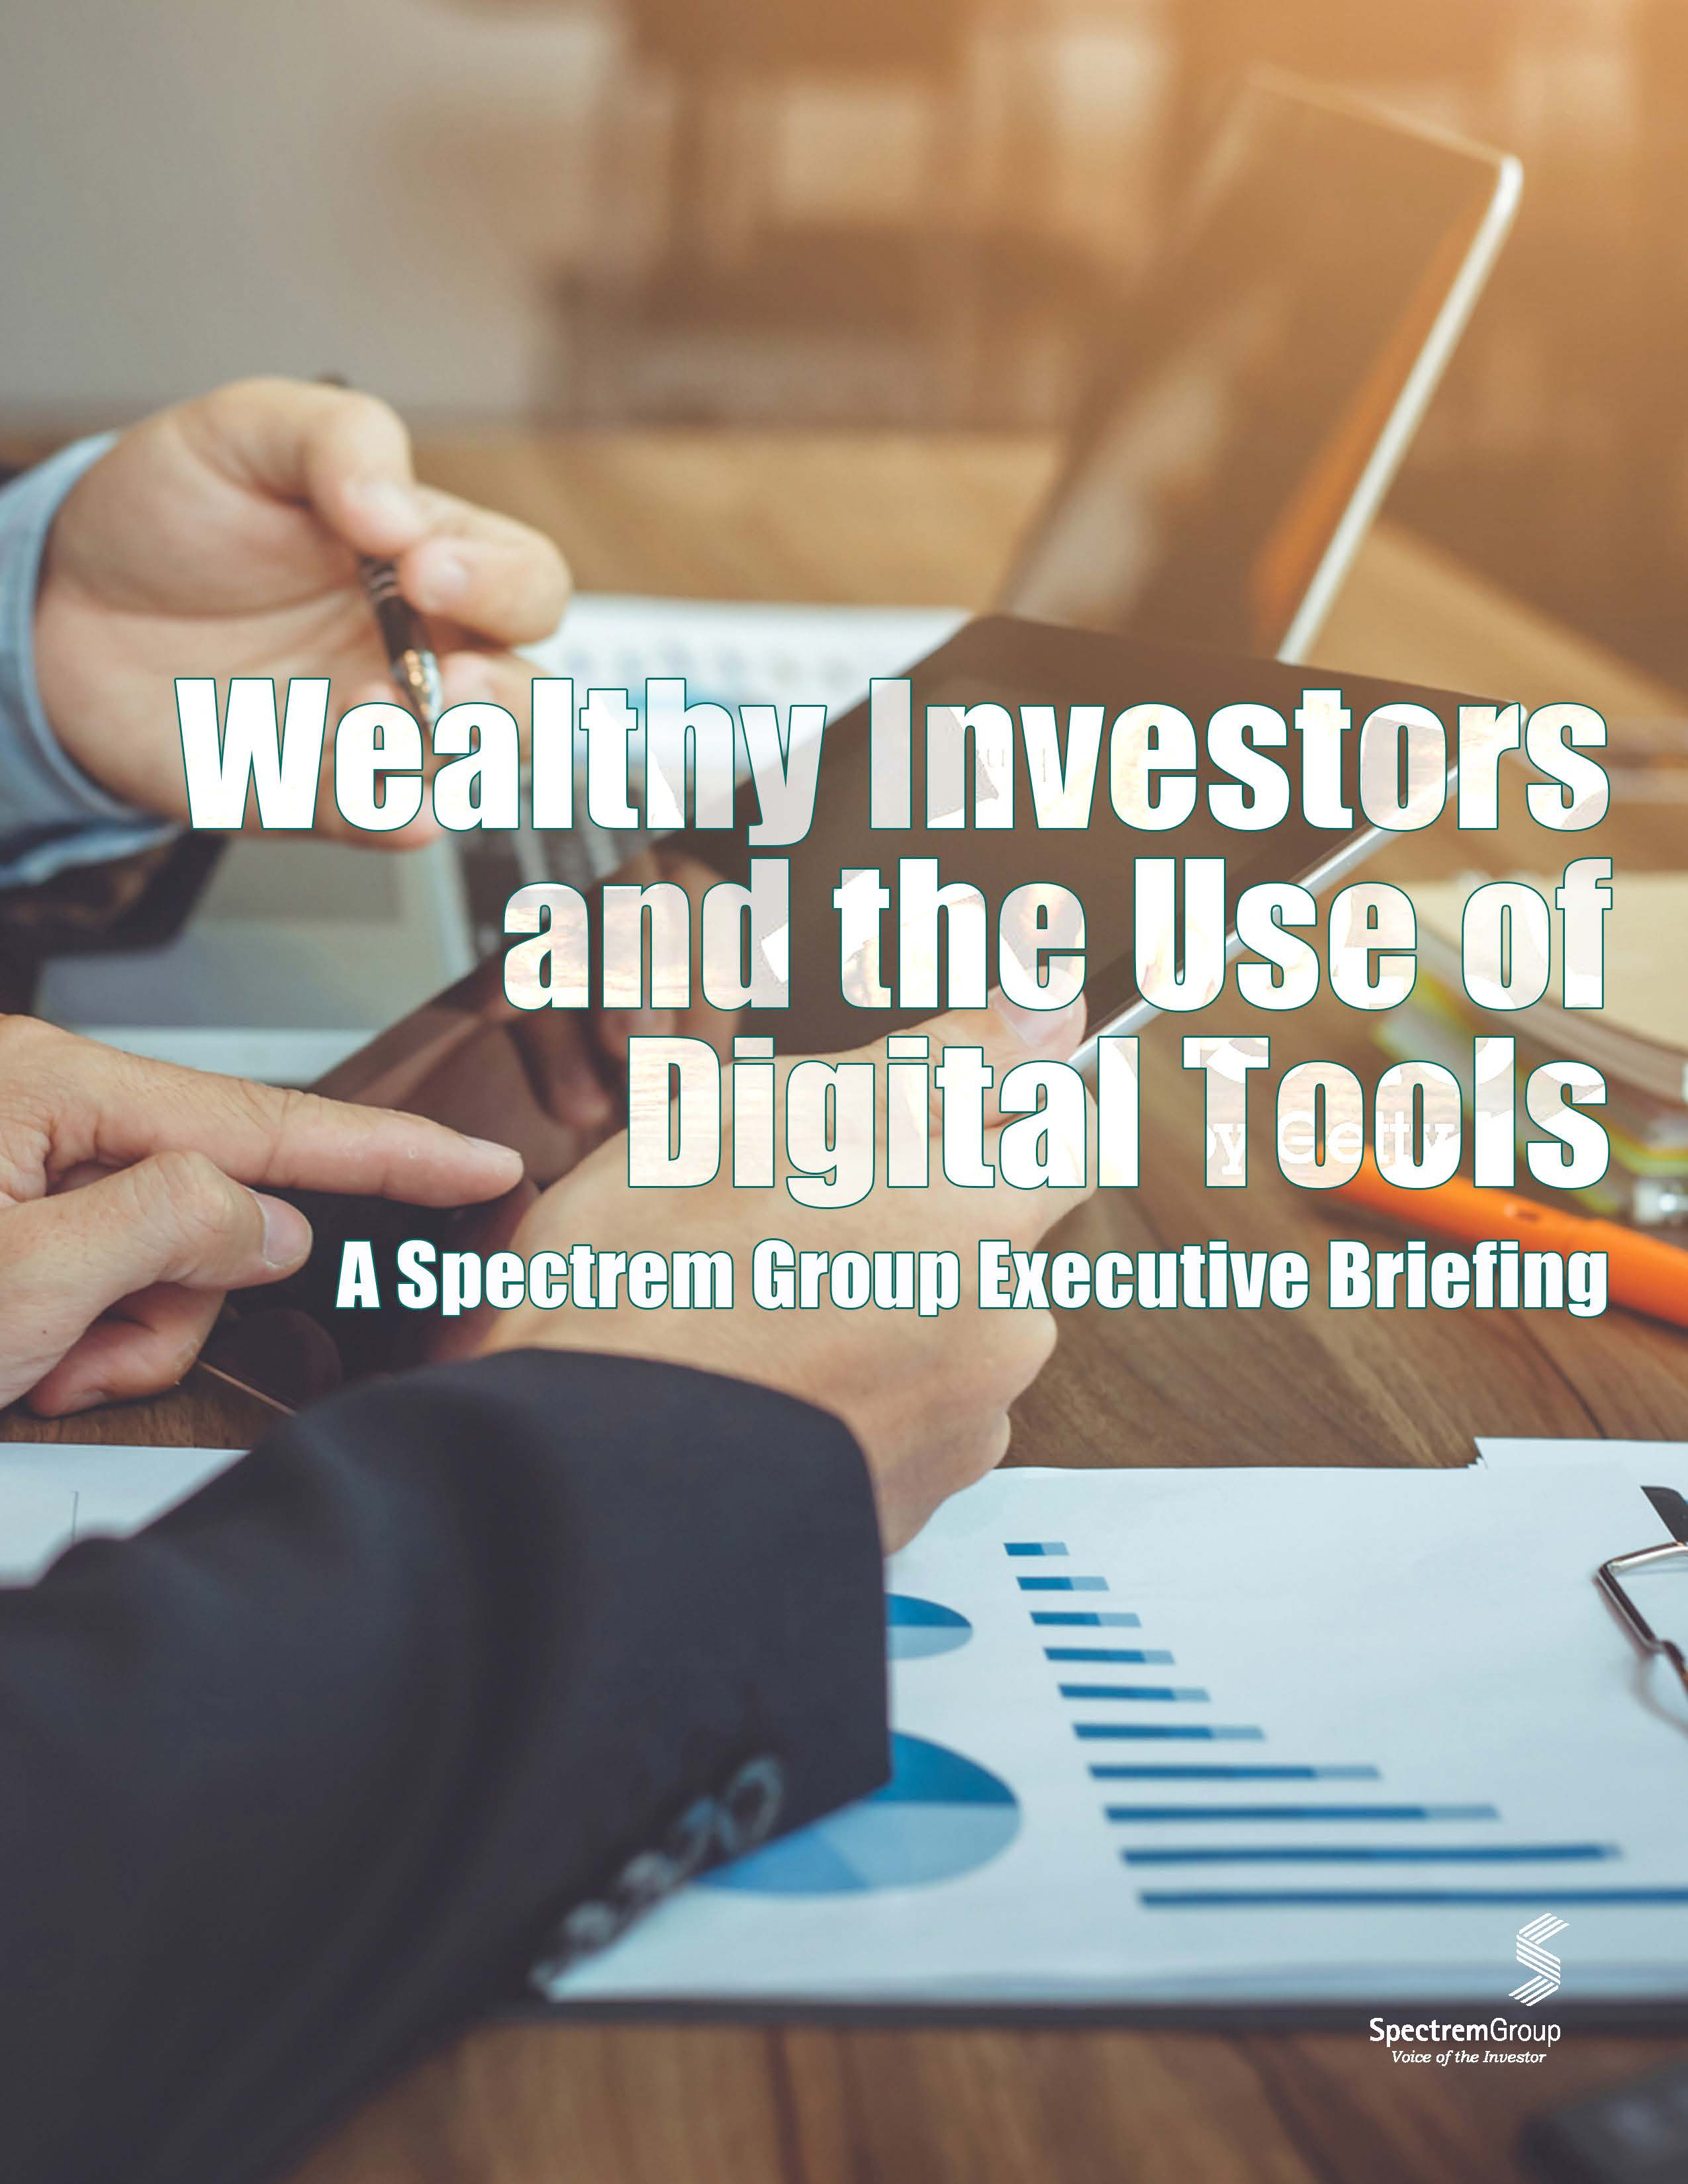 Wealthy Investors and Their Use of Digital Tools: an Executive Briefing